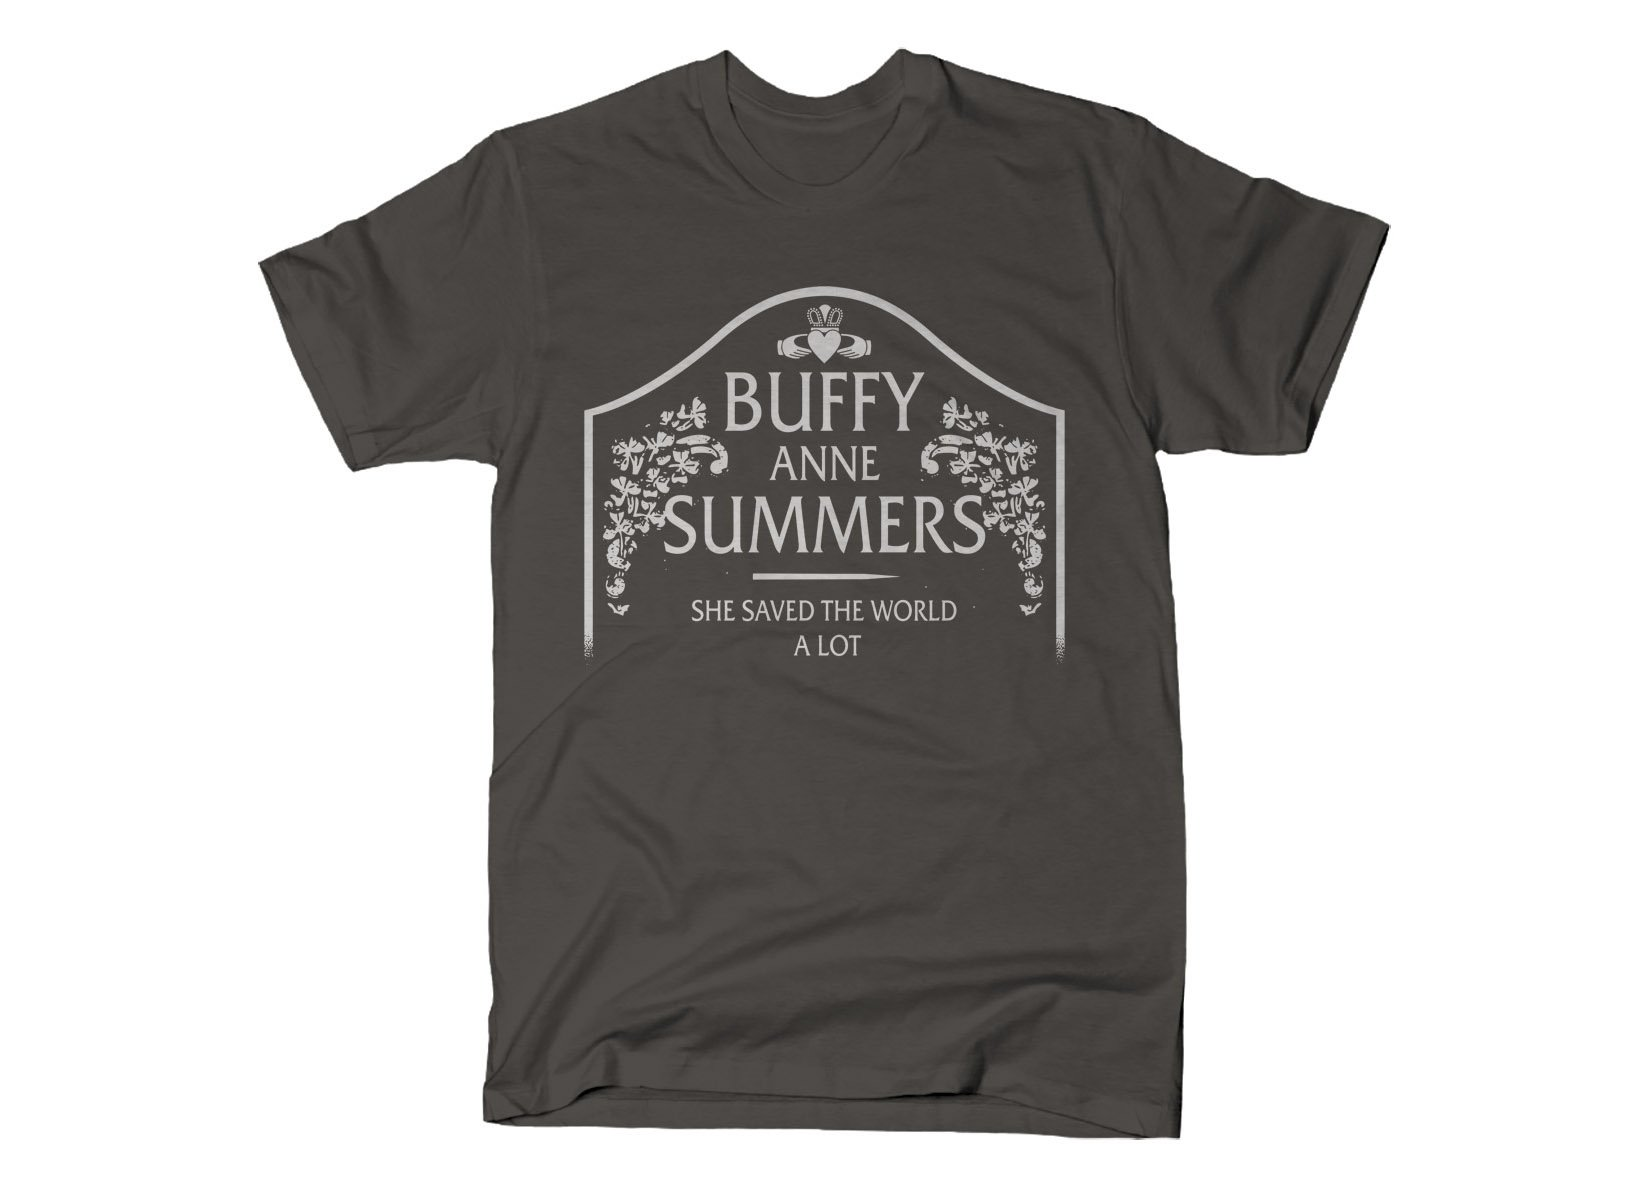 Buffy Anne Summers on Mens T-Shirt